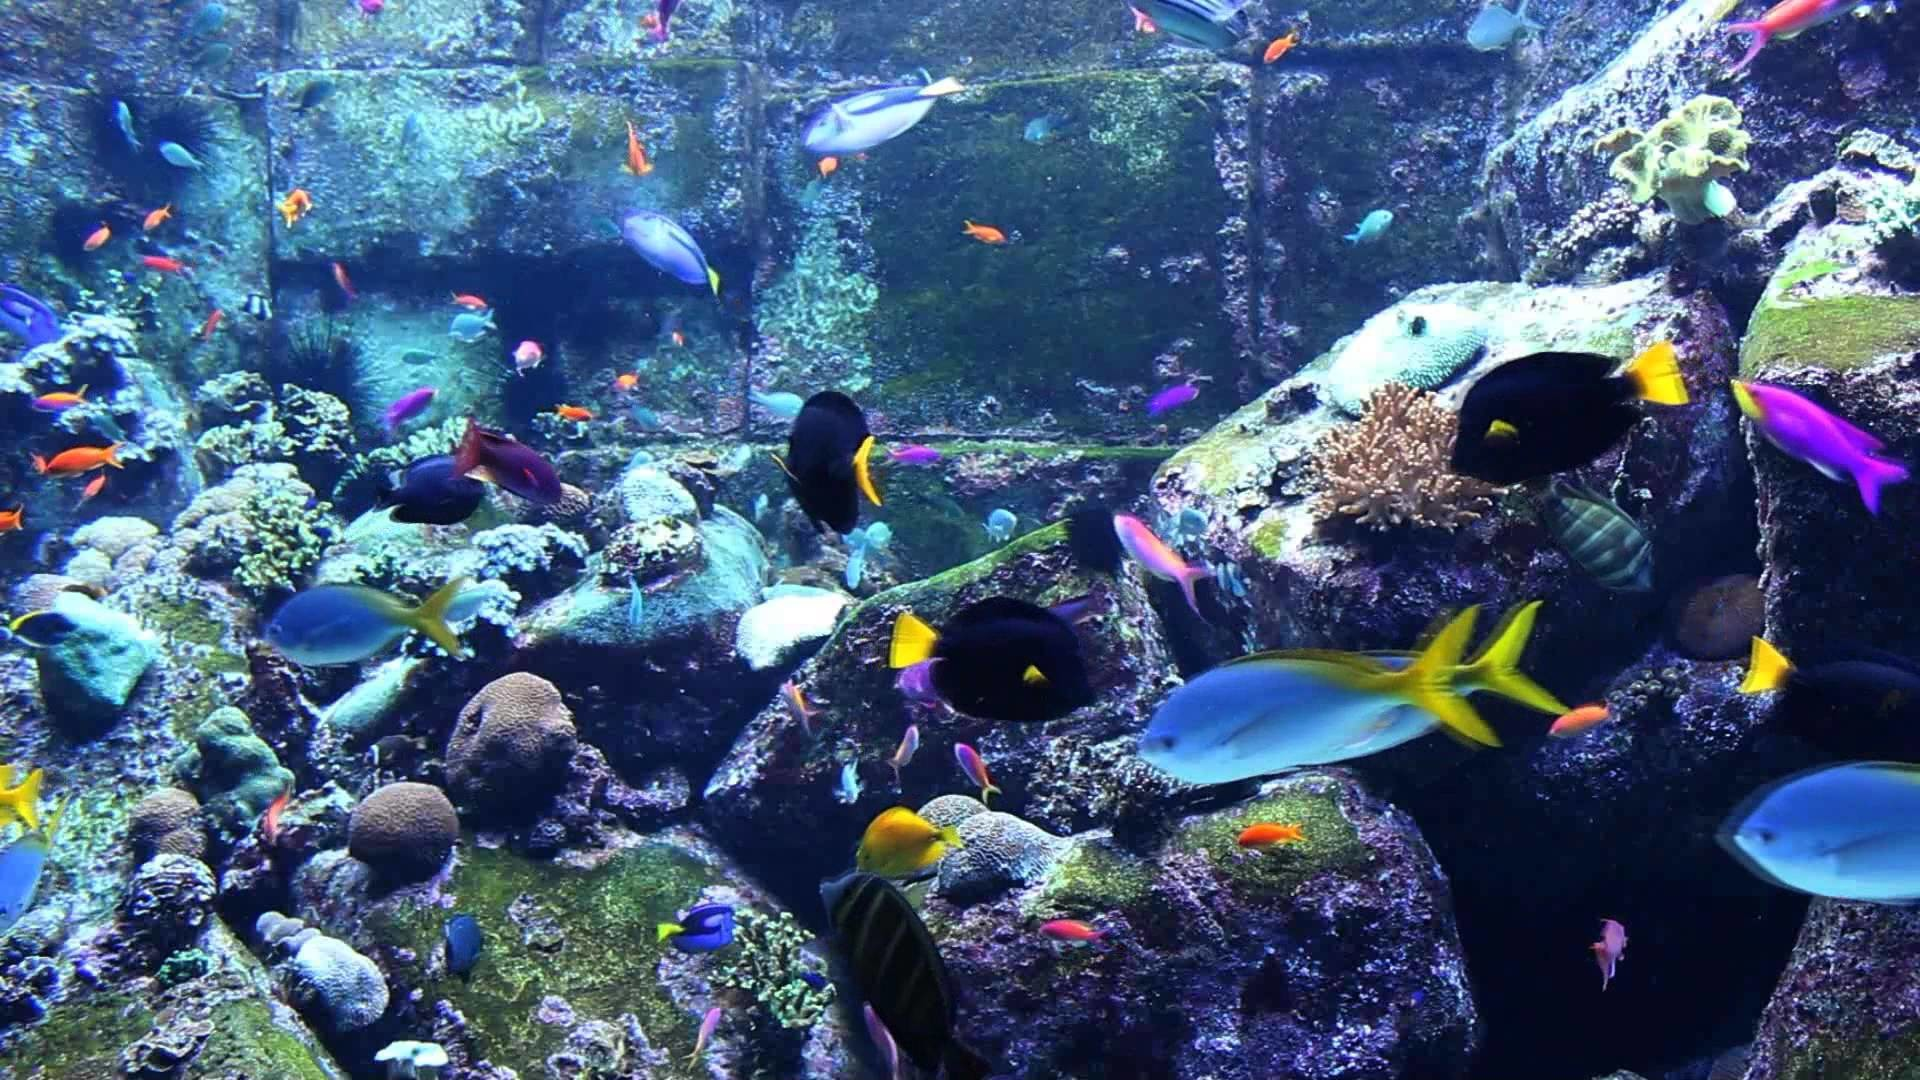 Coral reef live wallpaper 59 images for Reef tank fish